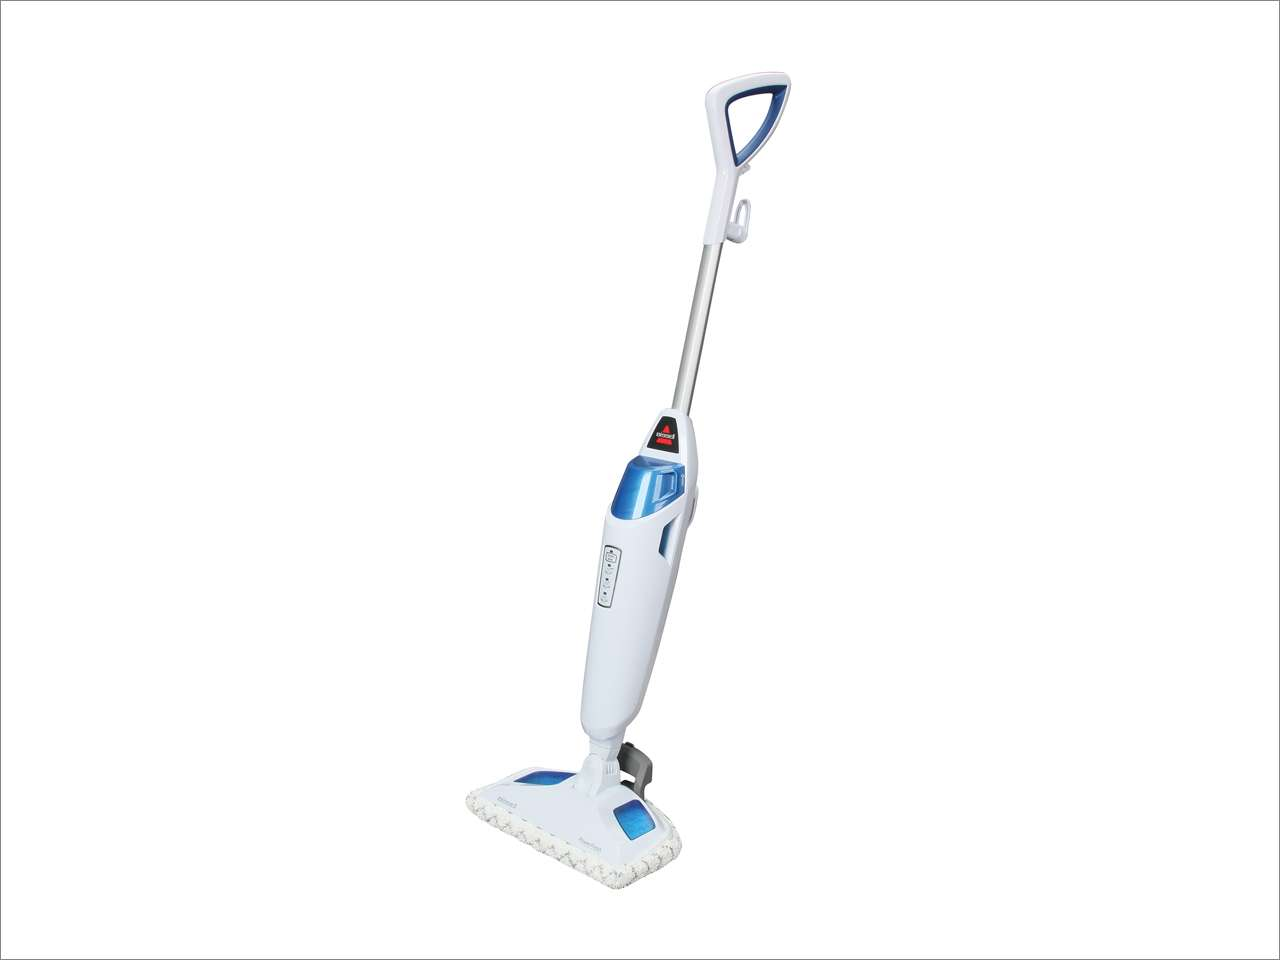 bissell steam mop best steam mop for hardwood floors 2018 top rankings 31476